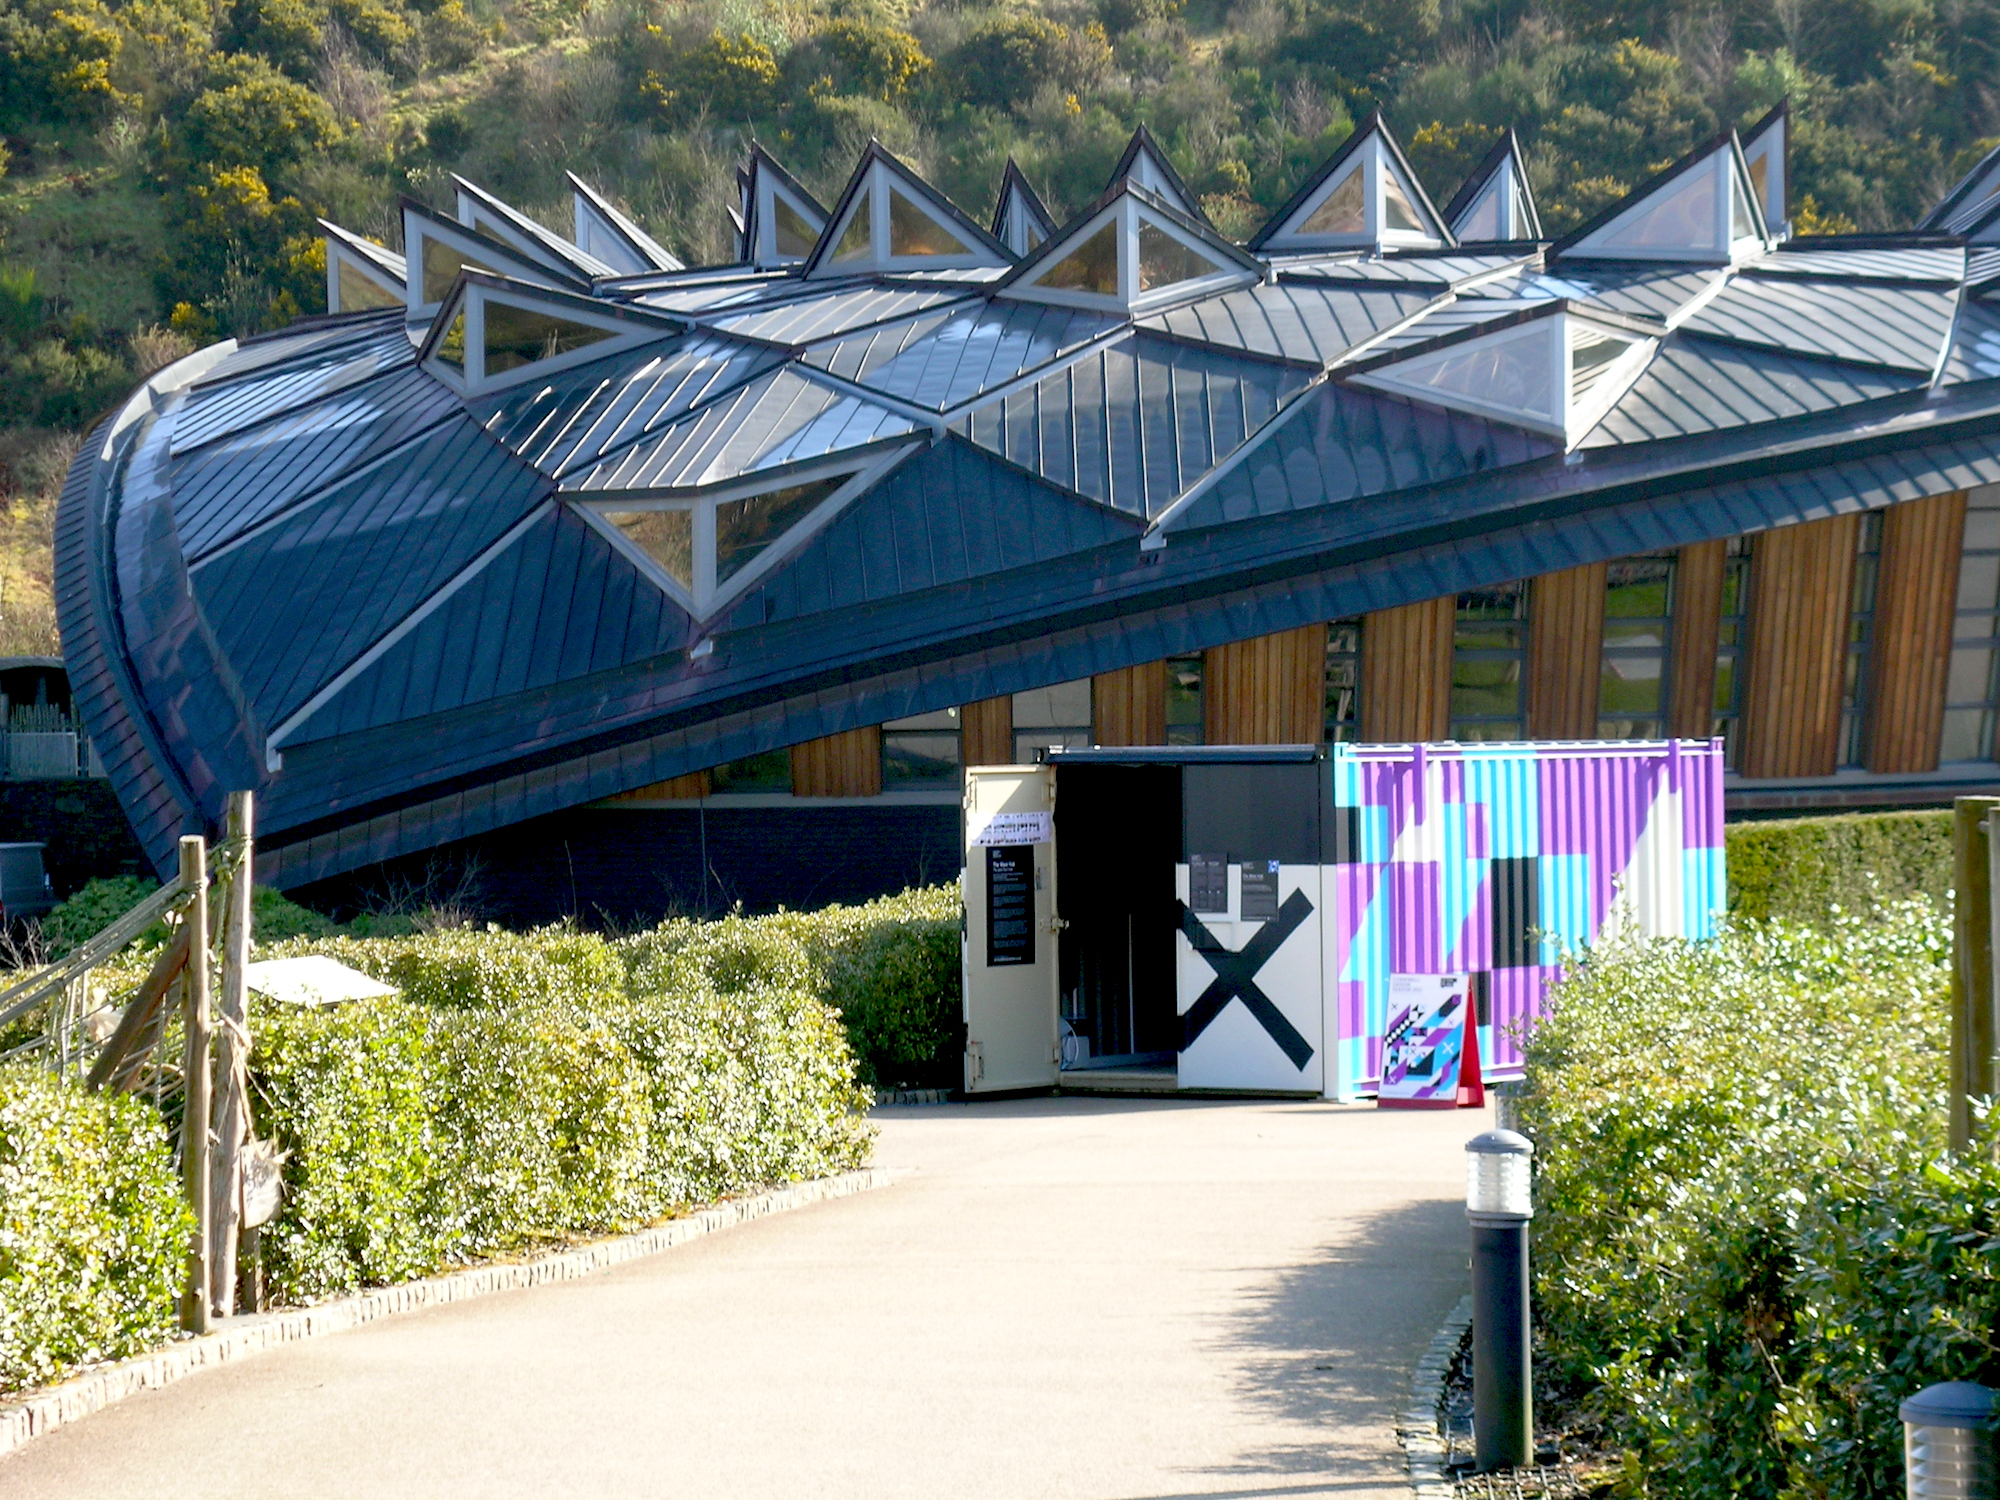 eleanor-bell-light-artist-eden-project-wave-hub-shipping-container.jpg